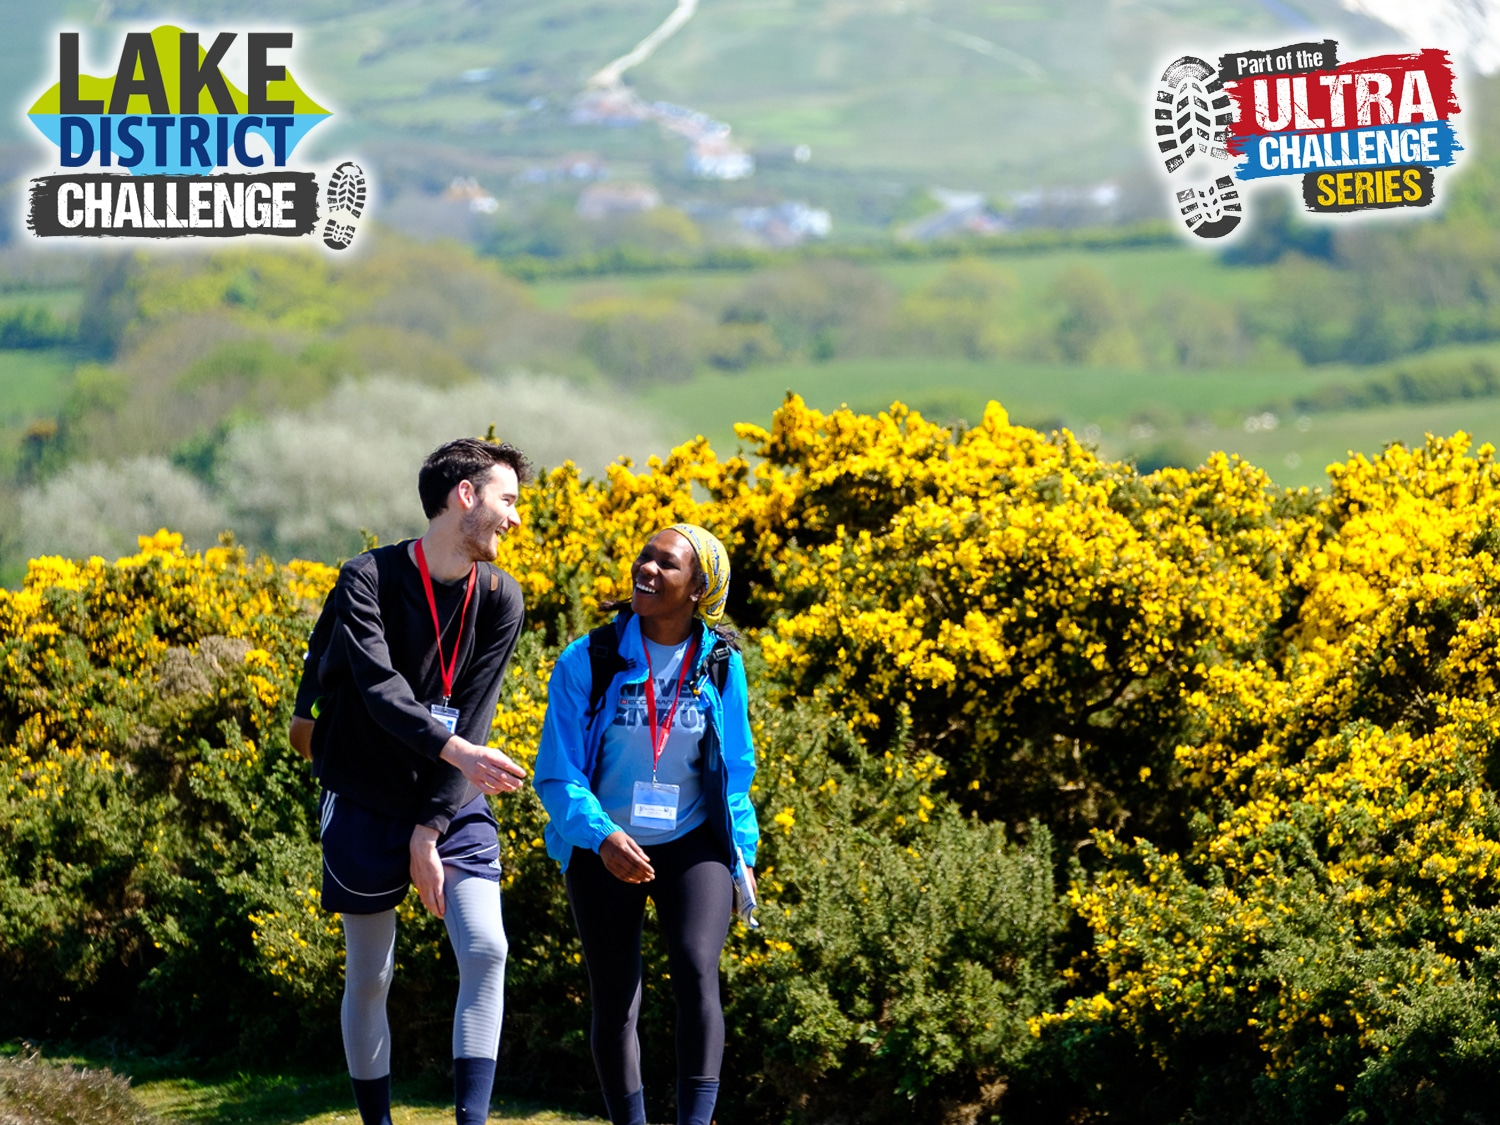 Image shows two walkers with yellow gorse in the background